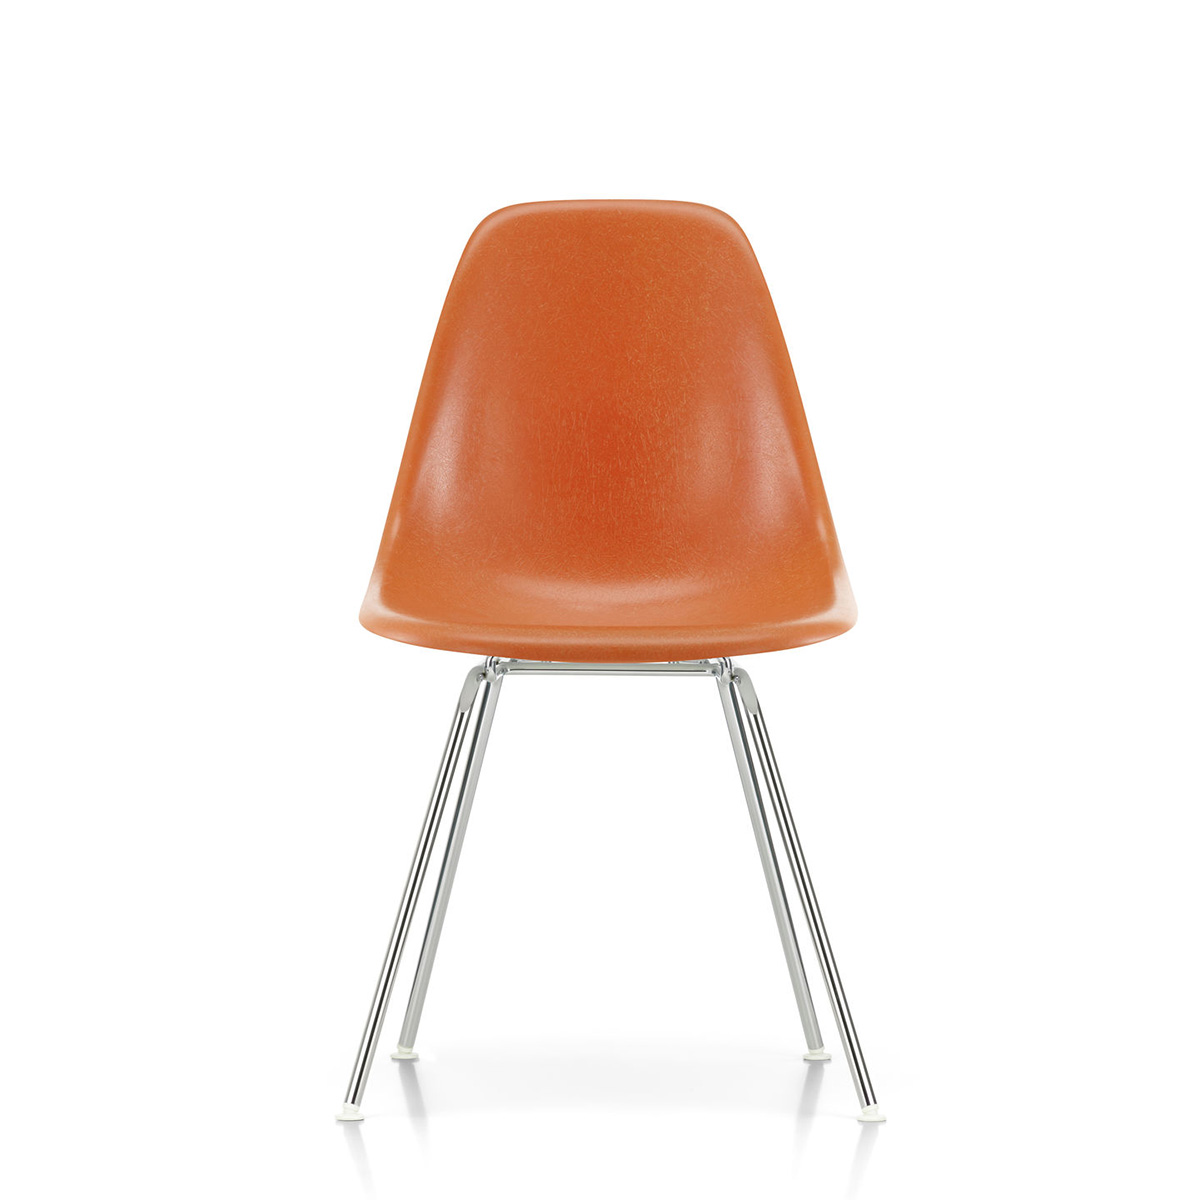 gallery-13434-for-VITRA0097